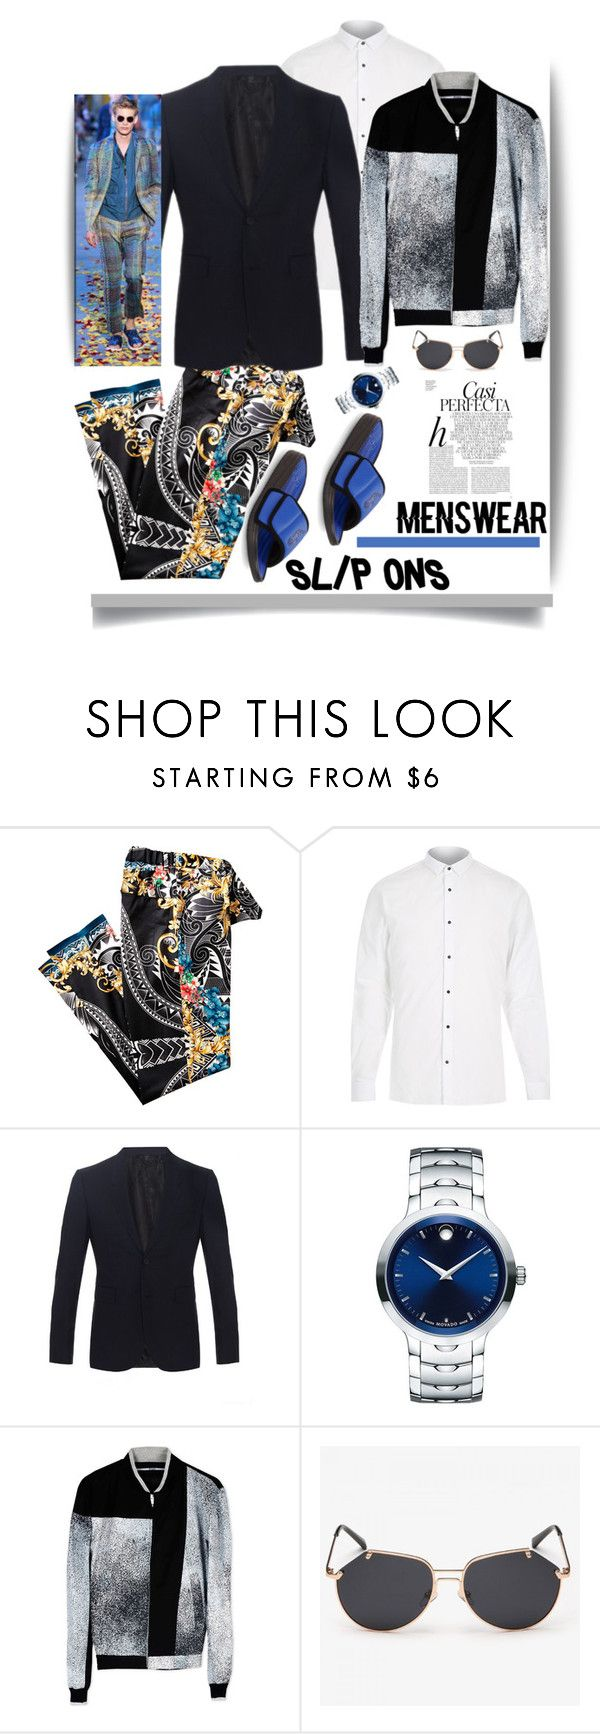 """""""Menswear: Slip-Ons '"""" by dianefantasy ❤ liked on Polyvore featuring River Island, Burberry, Movado, Kenzo, Polo Ralph Lauren, Whiteley, men's fashion, menswear, slipons and polyvoreeditorial"""